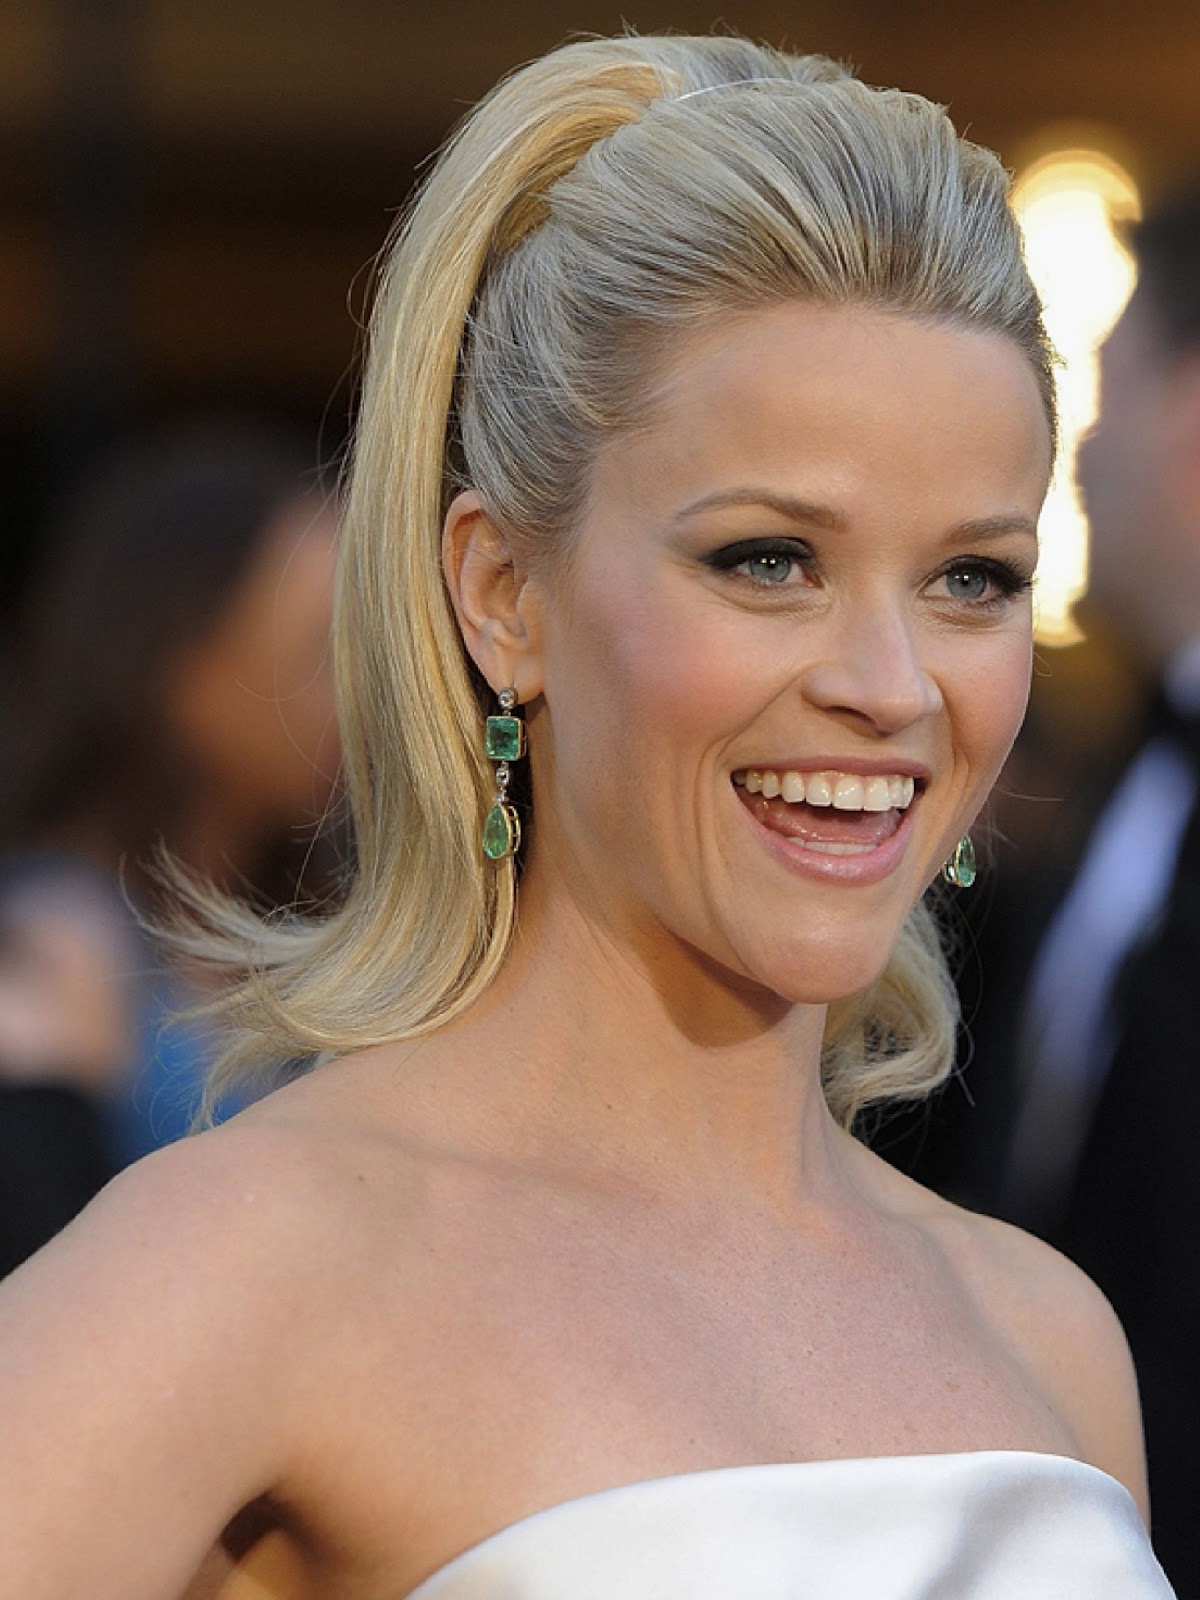 Fashion Hairstyle 2013 Ponytail Hairstyles For Women 2013